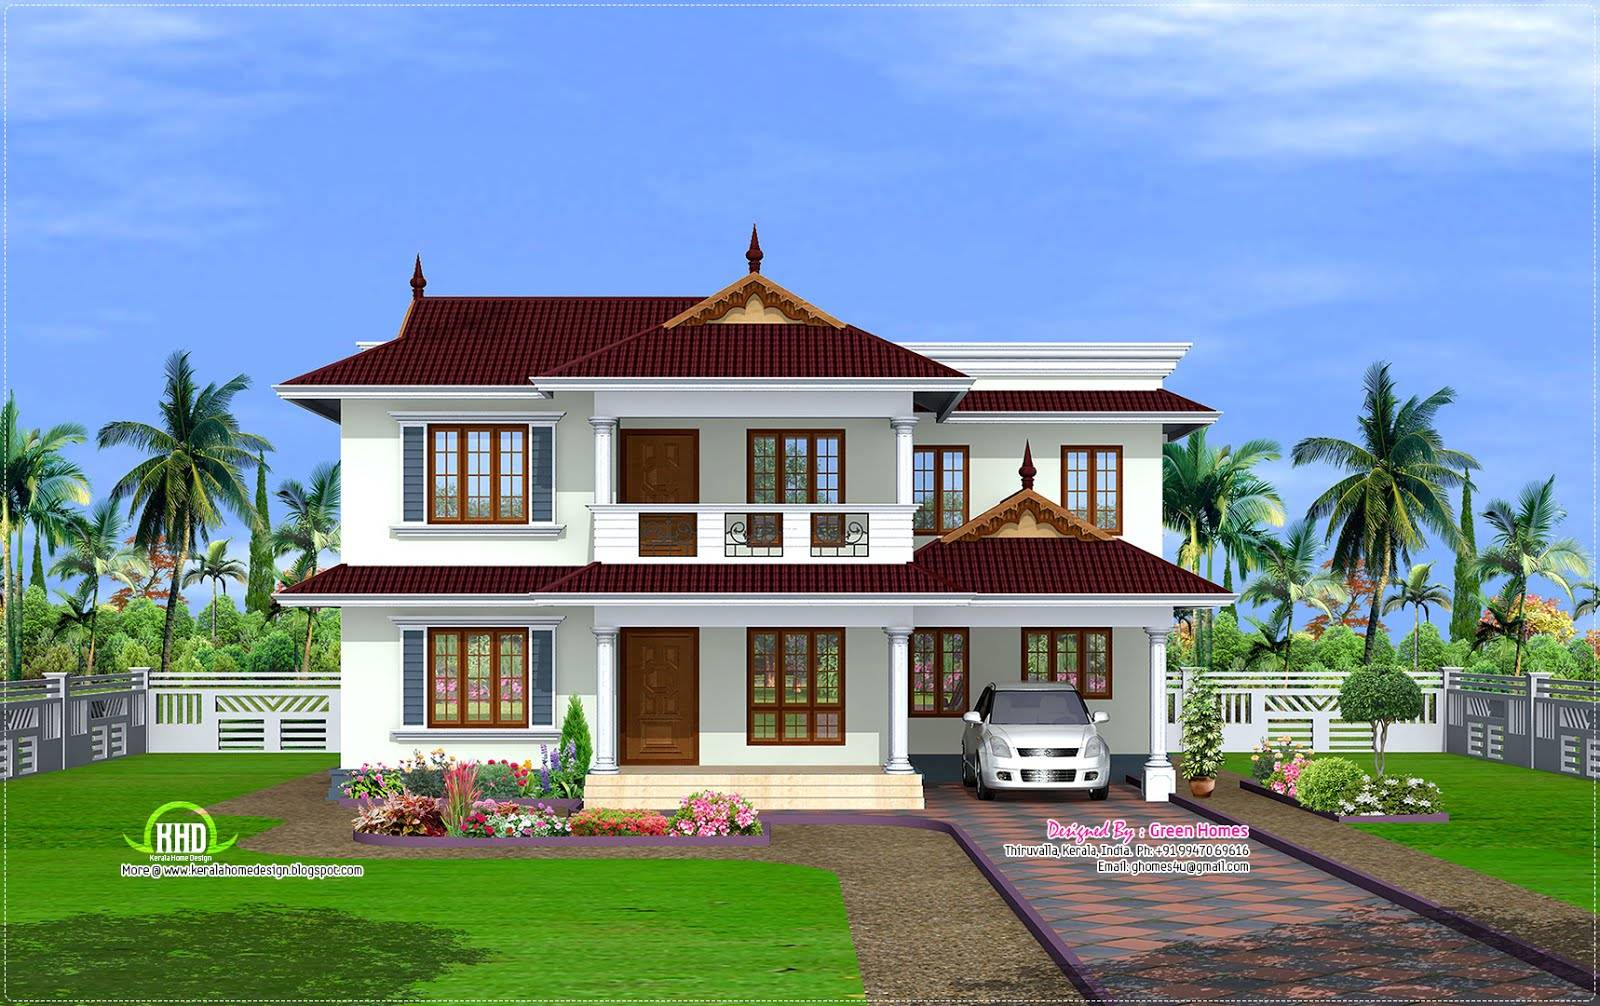 Perfect Kerala Home Design Image best simple home design in village of simple design home simple design home kerala home design Yards Bedroom Kerala Home Design Green Homes Thiruvalla